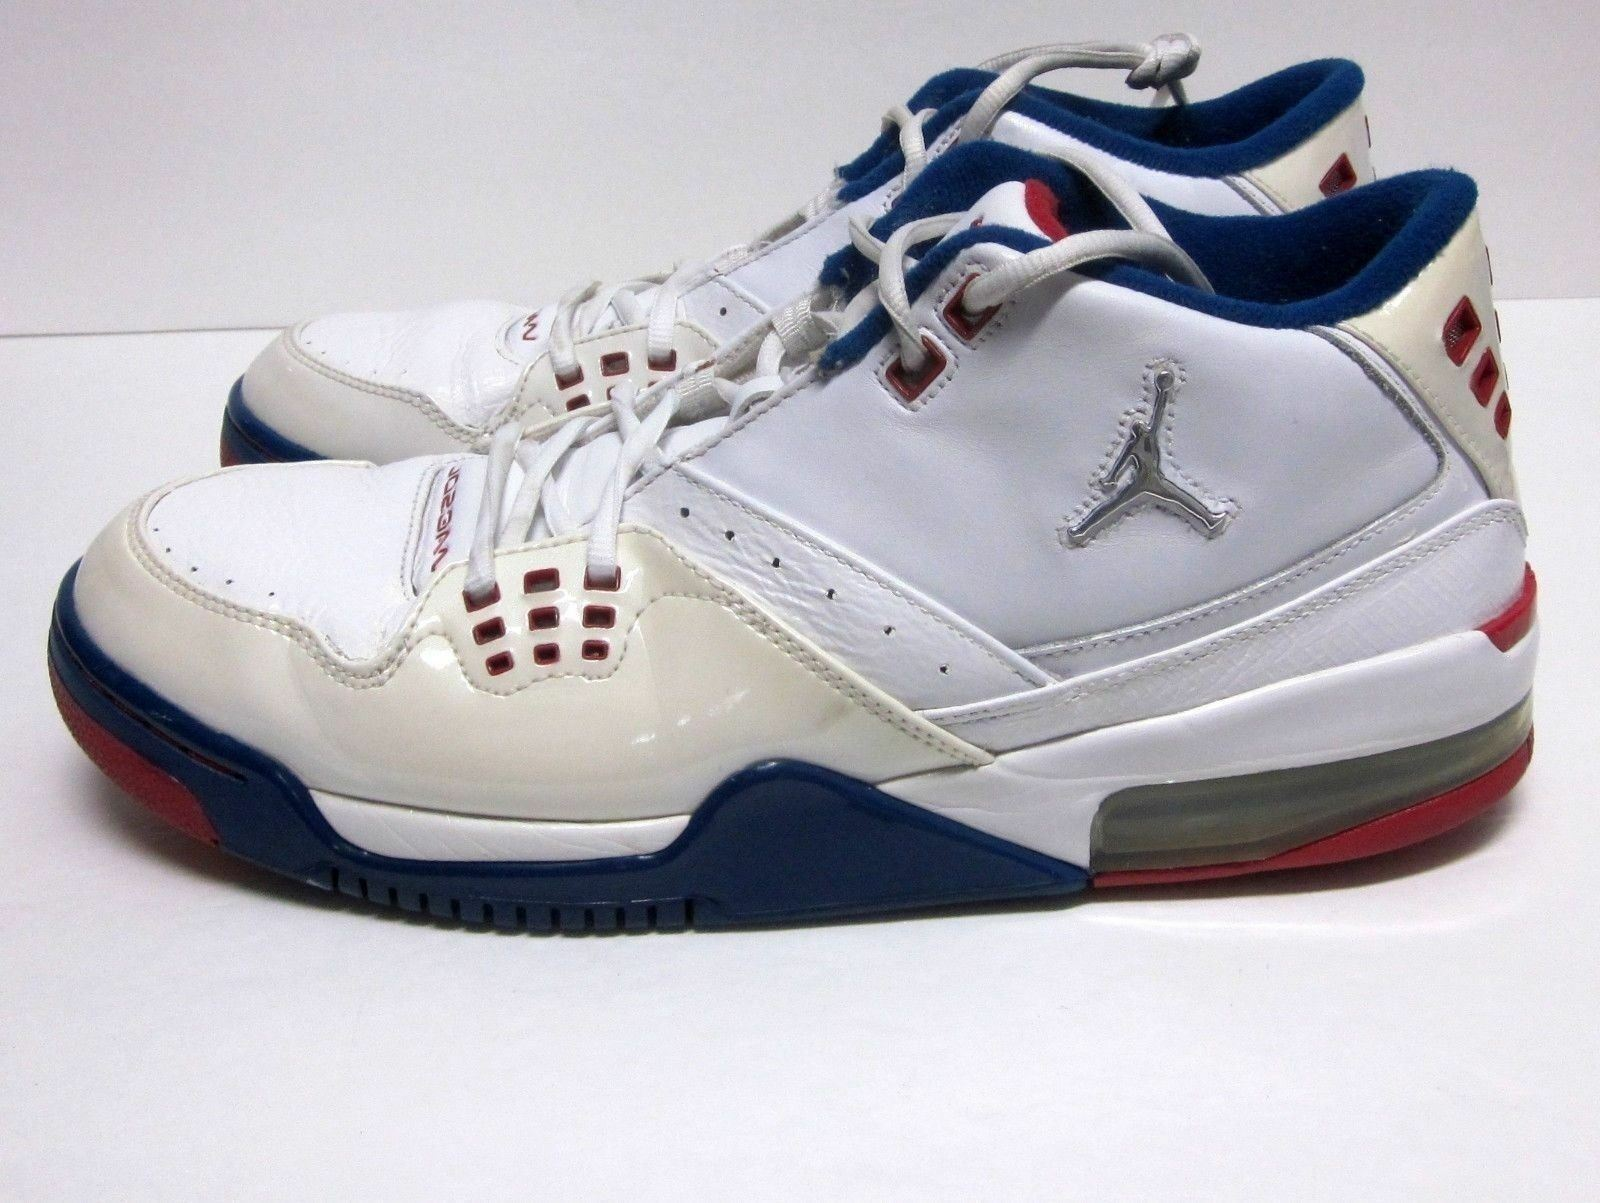 NIKE AIR JORDAN 2008 WHITE RED BLUE LEATHER BASKETBALL SHOES Price reduction 317820-109 Wild casual shoes